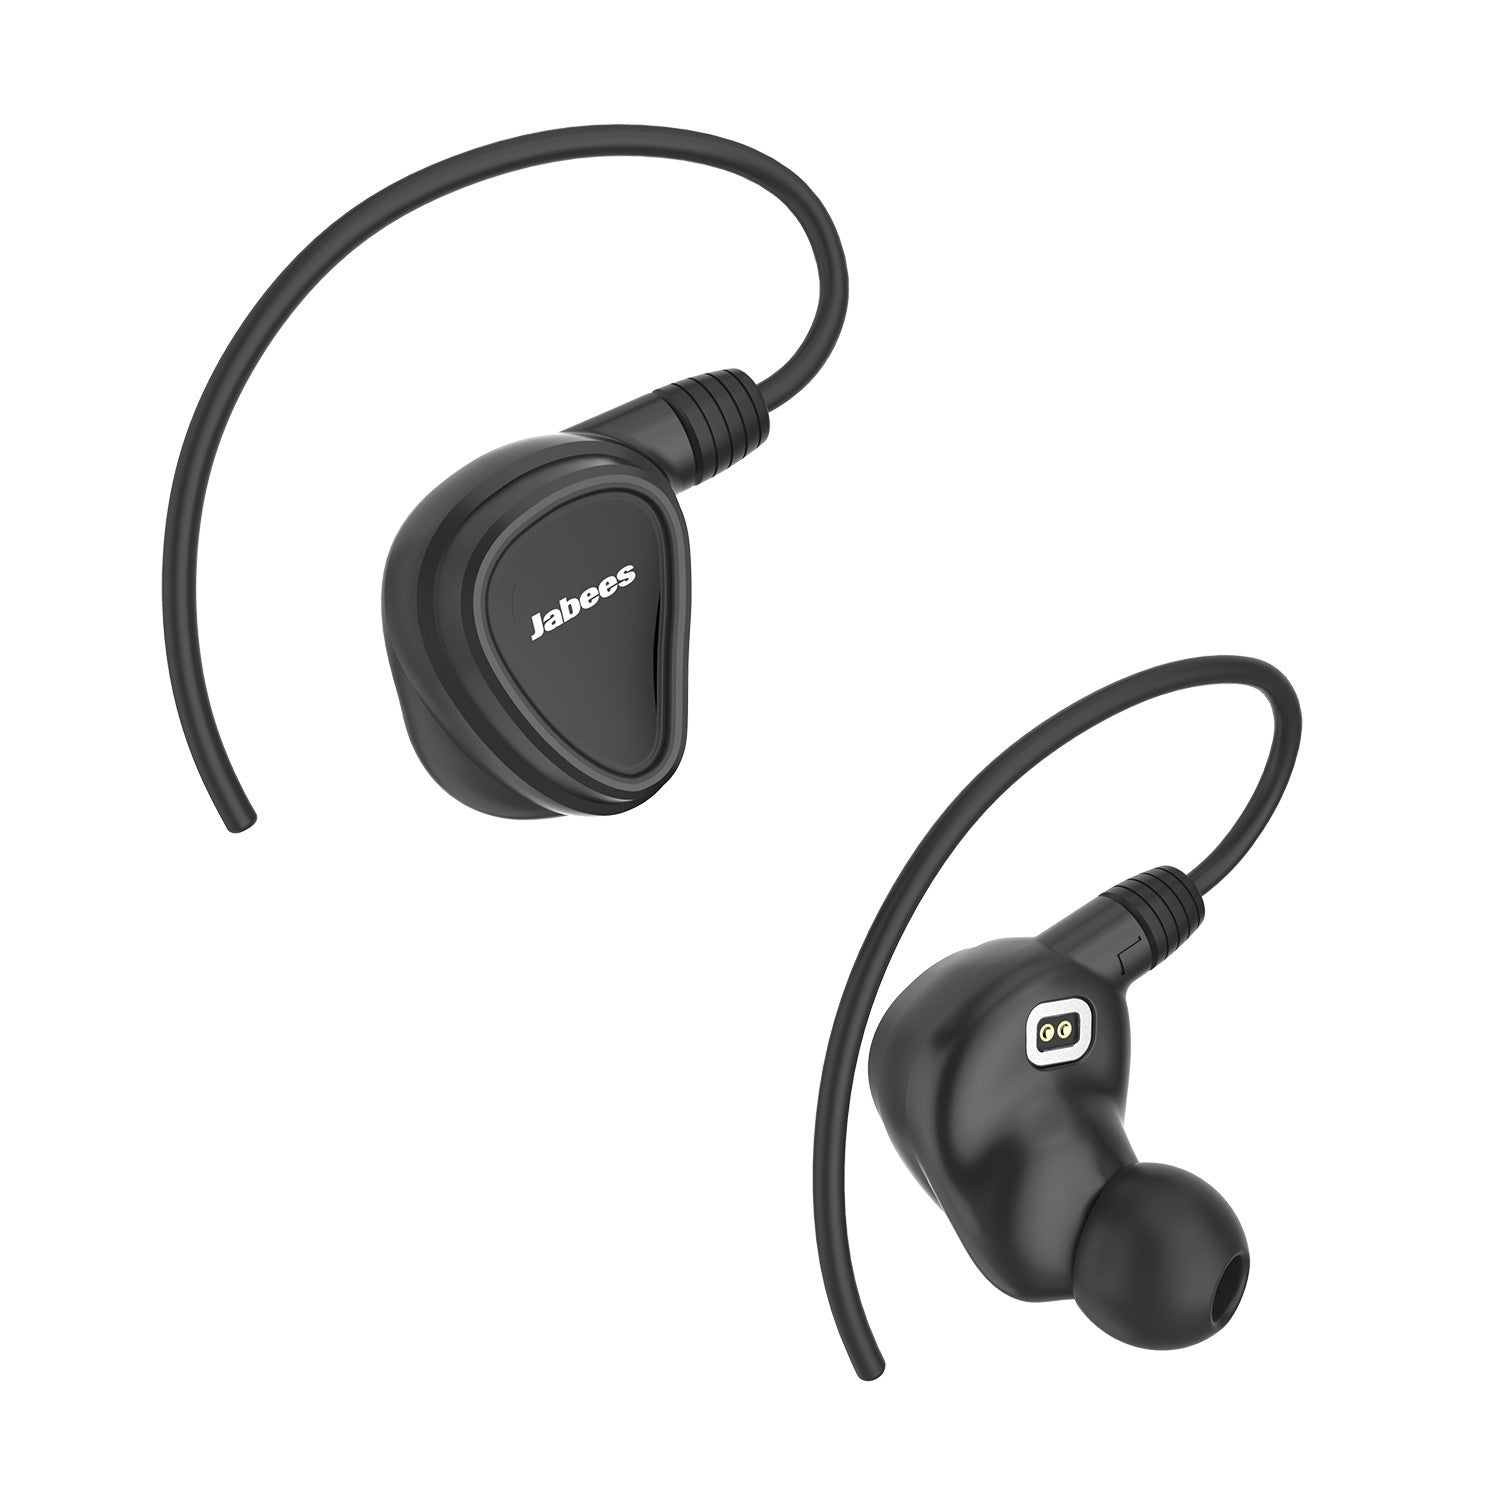 Image of   Jabees Shield trådløse sports earbuds